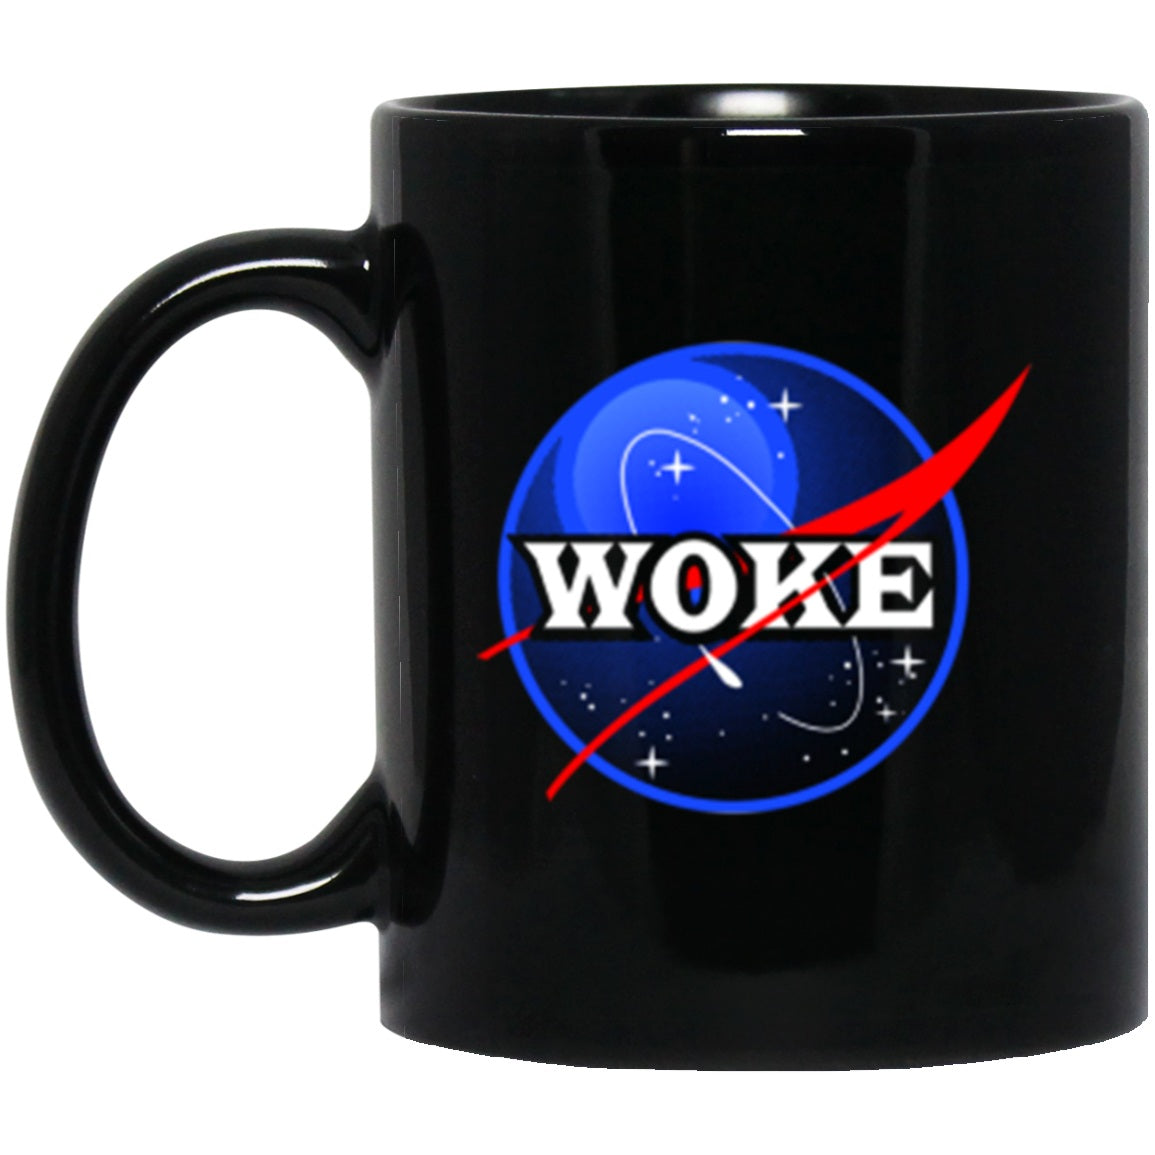 Drinkware - Woke Black Mug 11oz (2-sided)